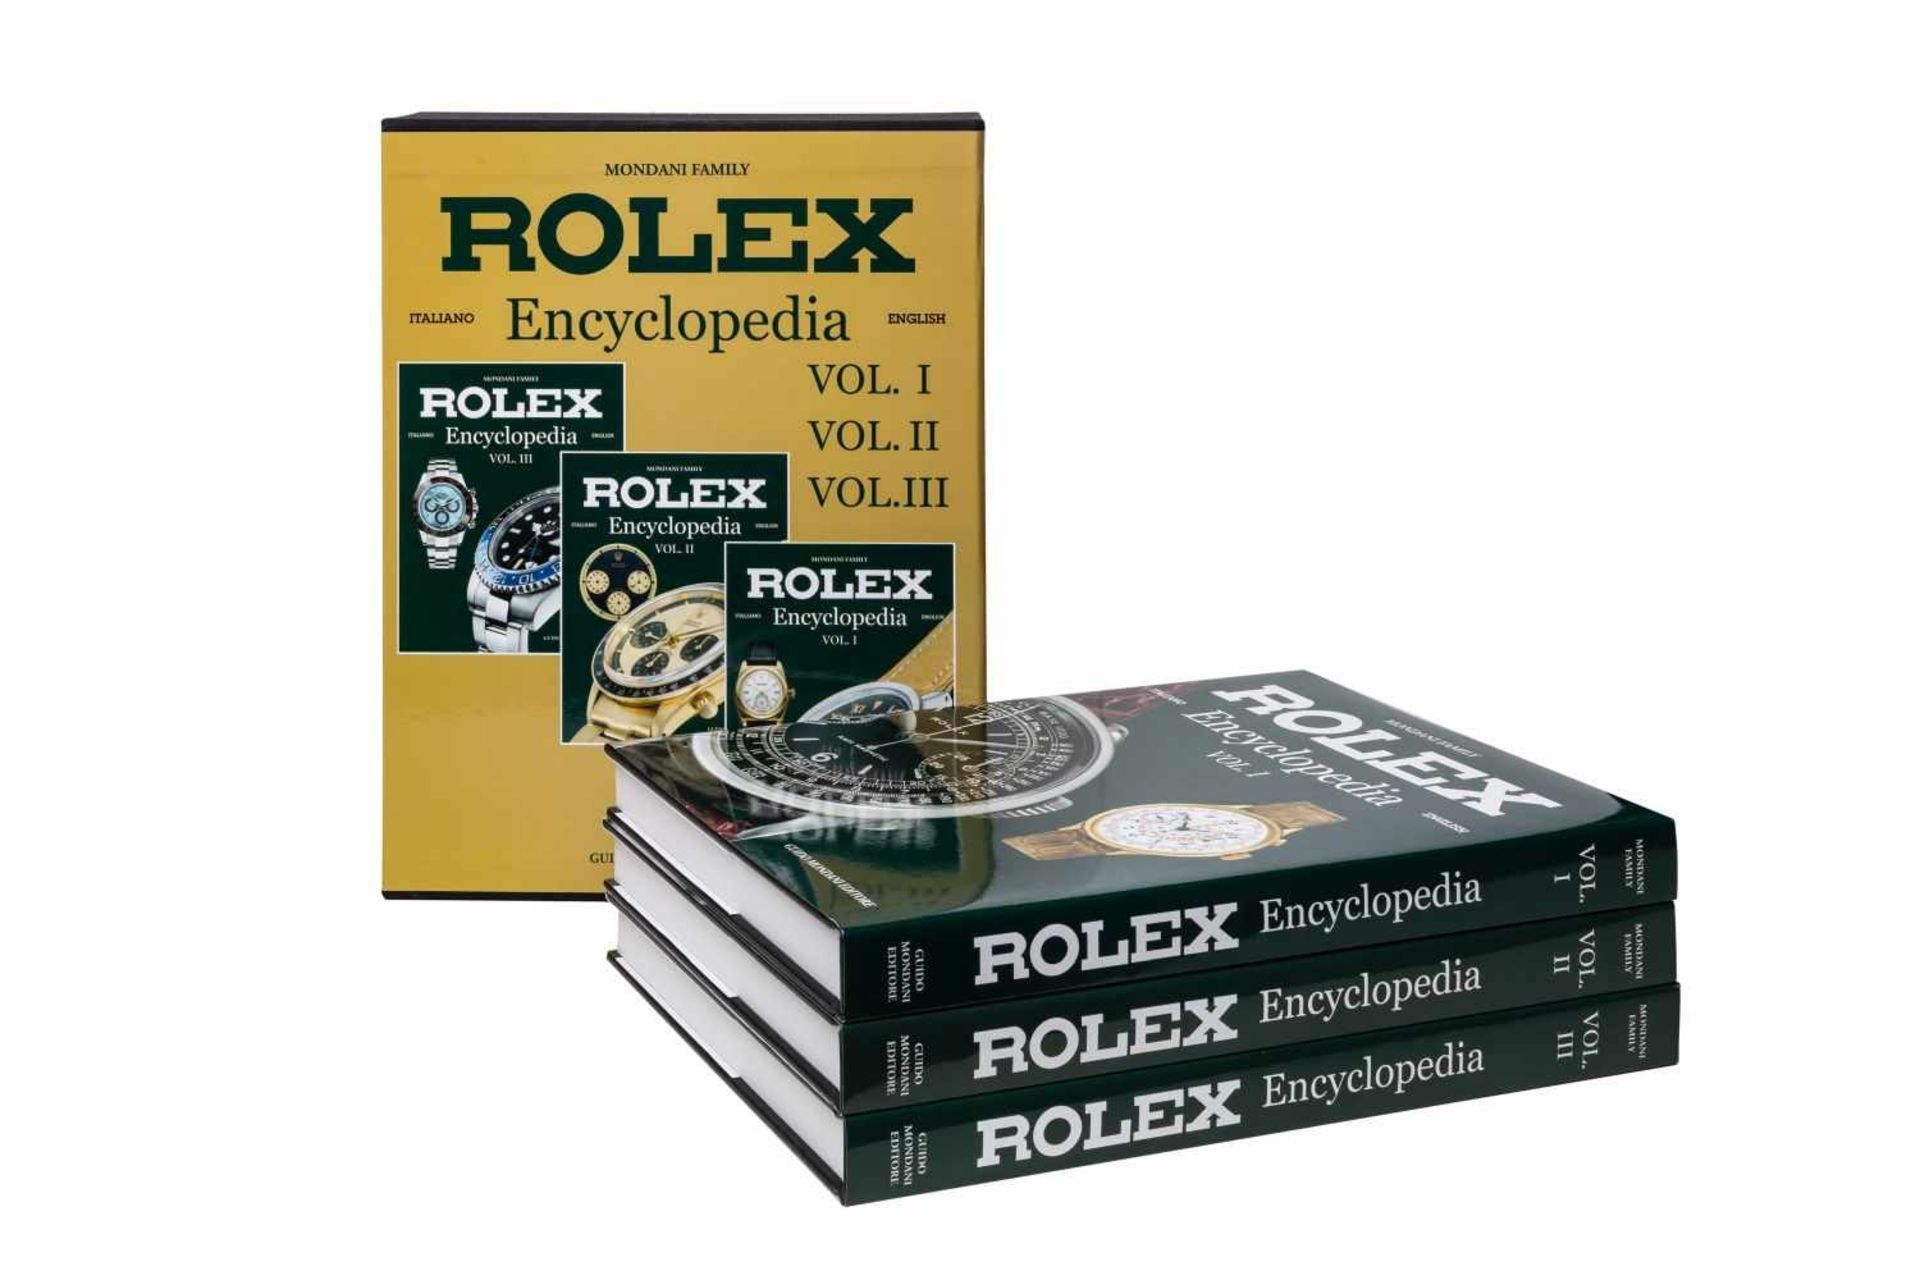 Los 37 - Rolex Book EncyclopediaRolex Encyclopedia represents the most complete work ever realized on